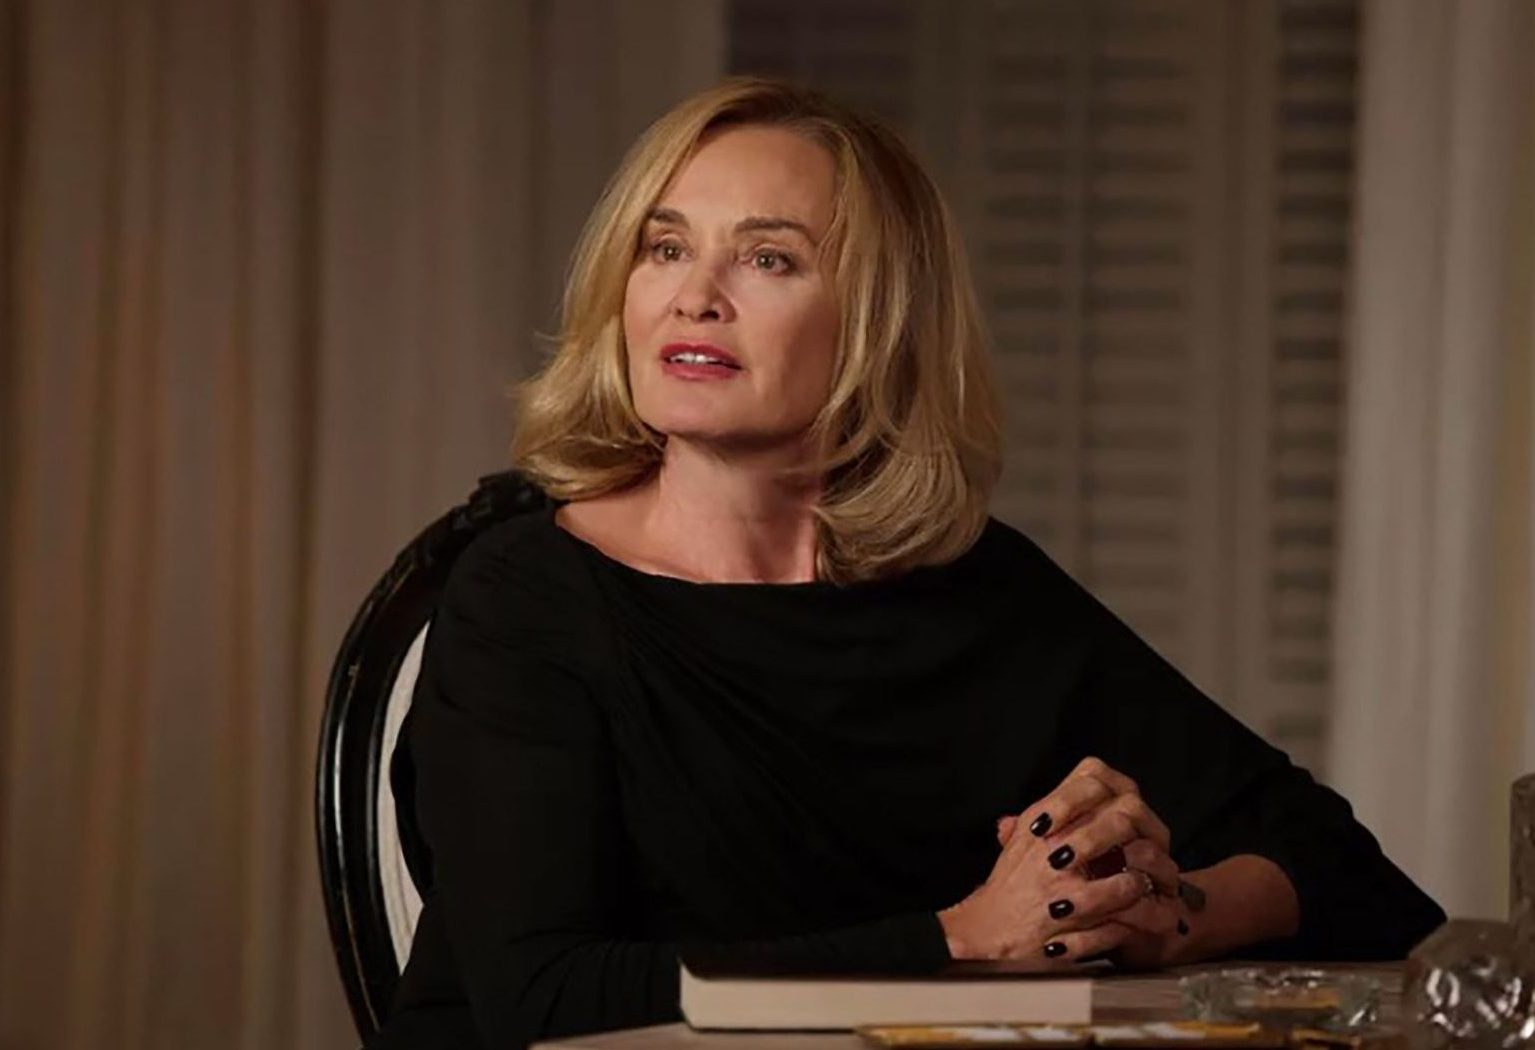 aa 1 e1618834659902 20 Things You Never Knew About Jessica Lange